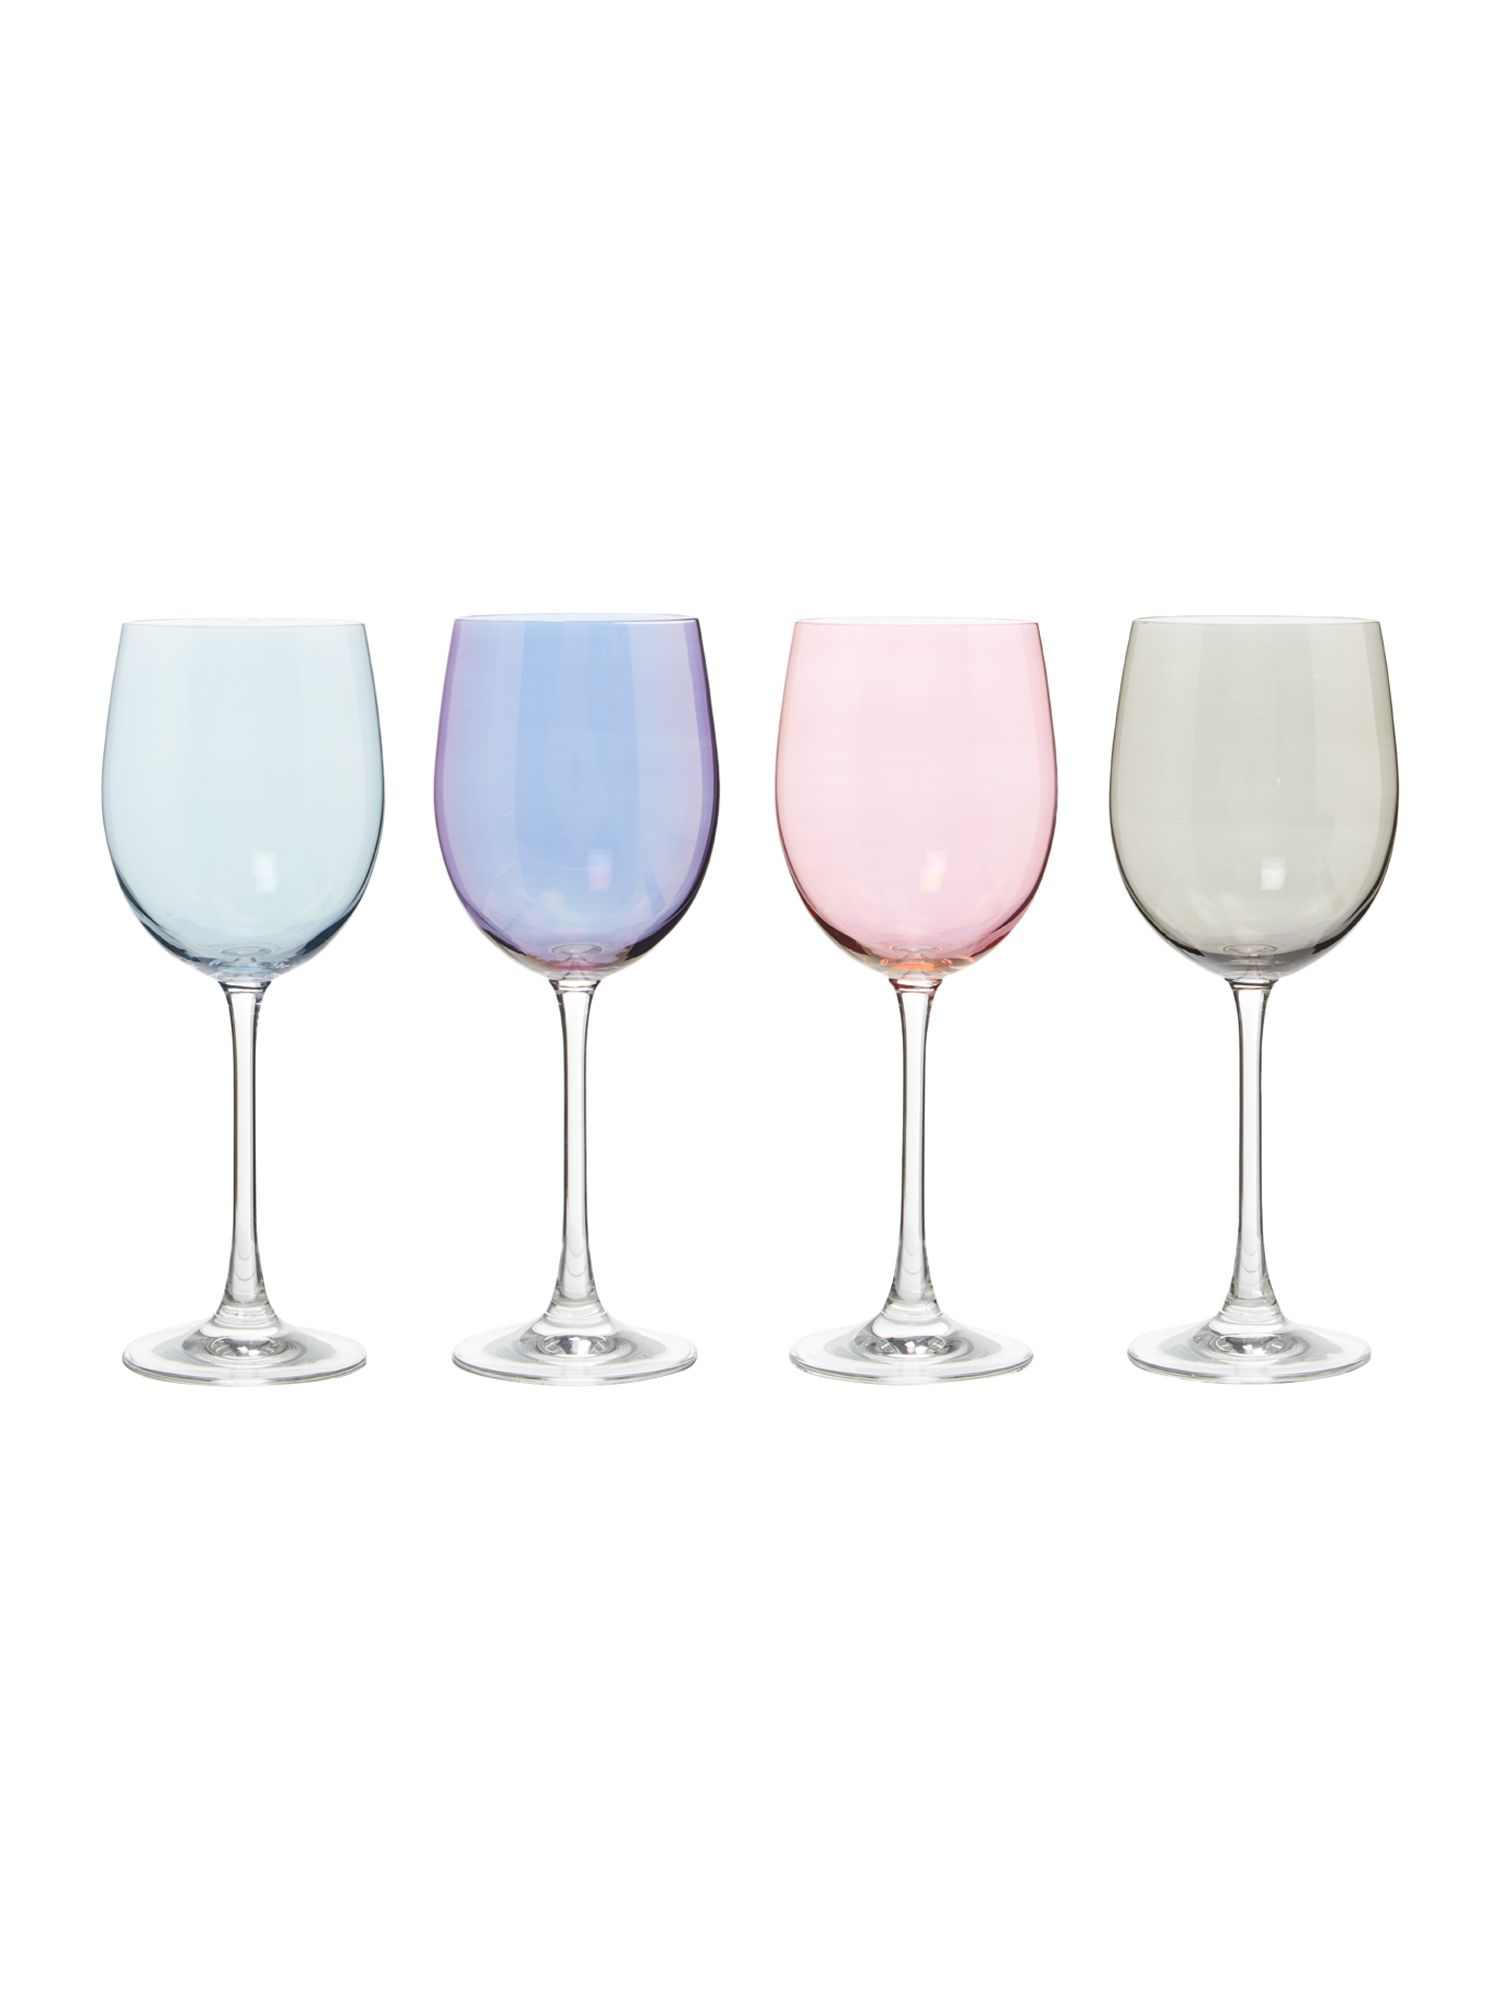 Linea Lustre crystal wine glasses set of 4